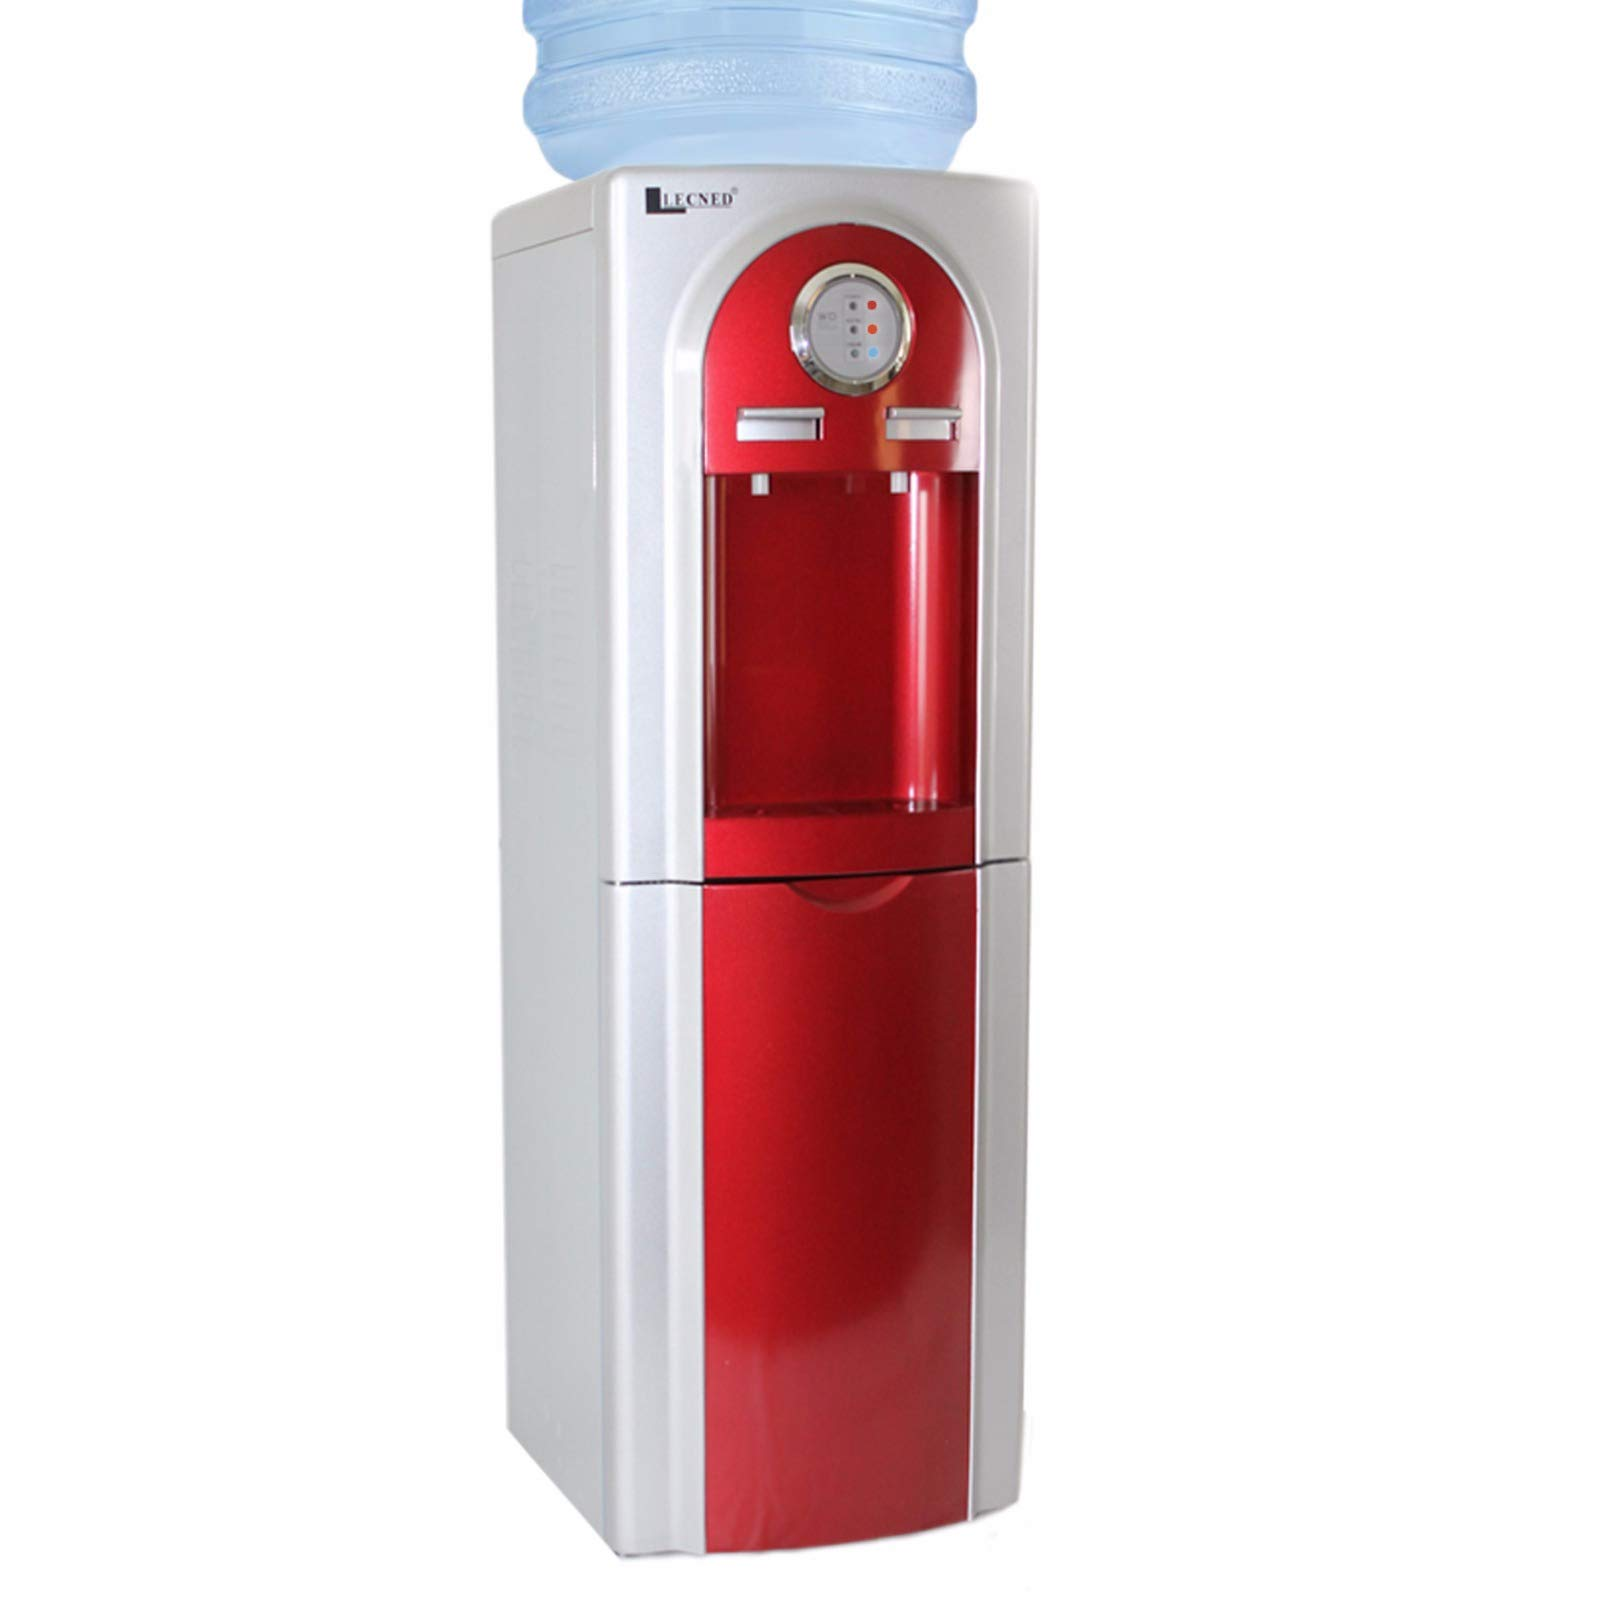 Water Dispenser Llecned RED Top Load Hot/Cold Deluxe Stainless Steel w/compact storage by LLECNED